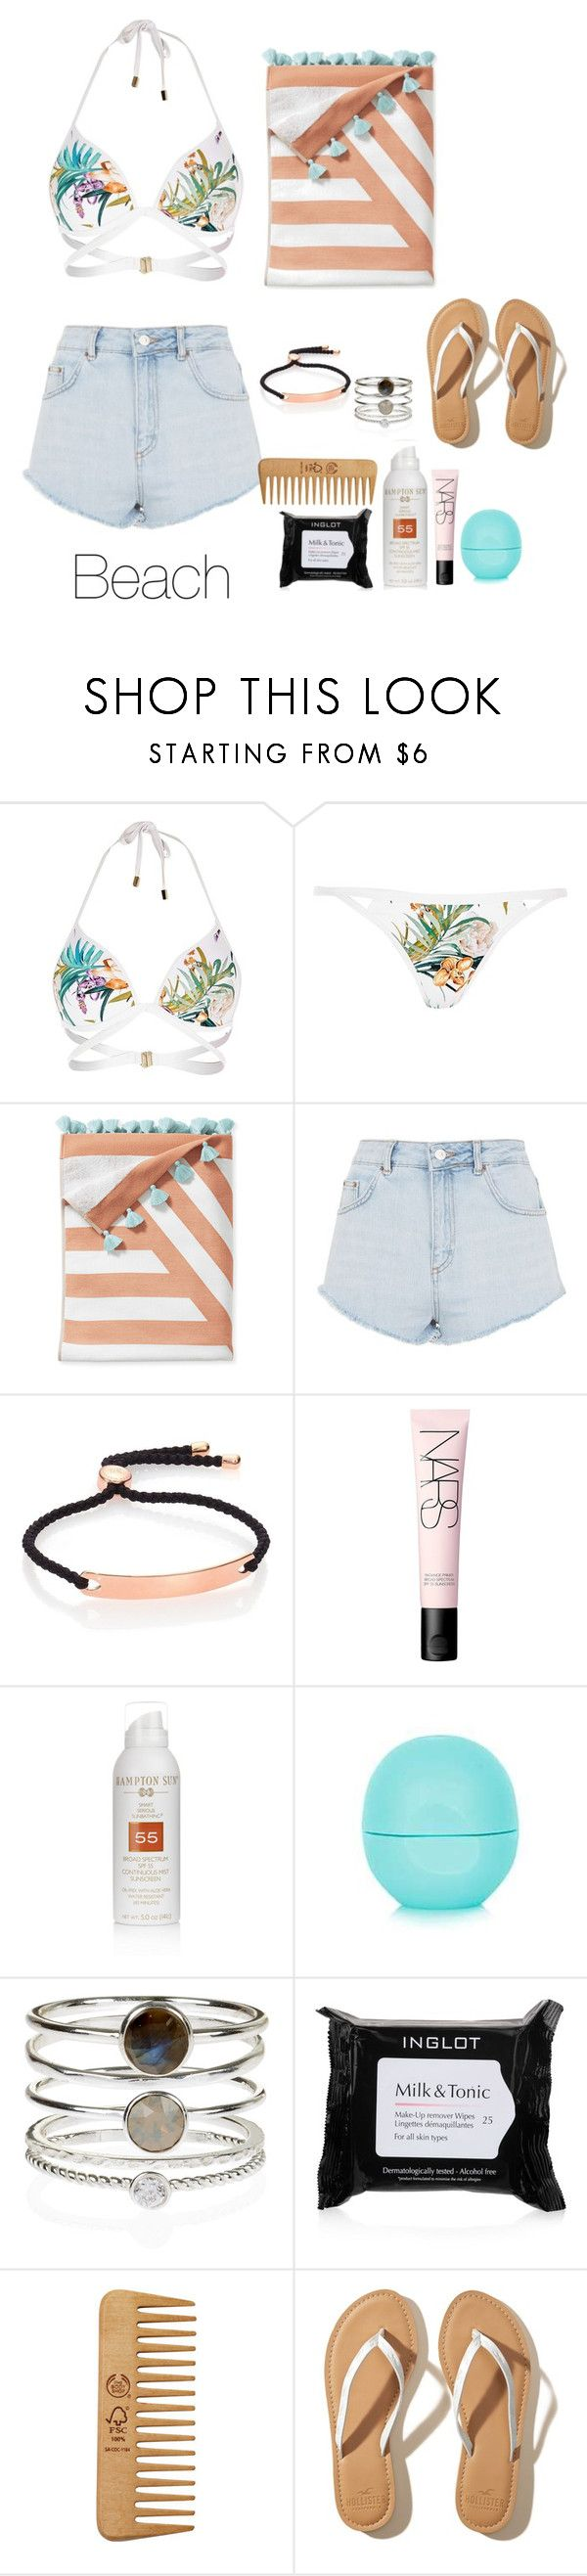 """Sem título #1086"" by army-forever on Polyvore featuring moda, River Island, Serena & Lily, Topshop, Monica Vinader, NARS Cosmetics, Hampton Sun, Eos, Accessorize e Inglot"